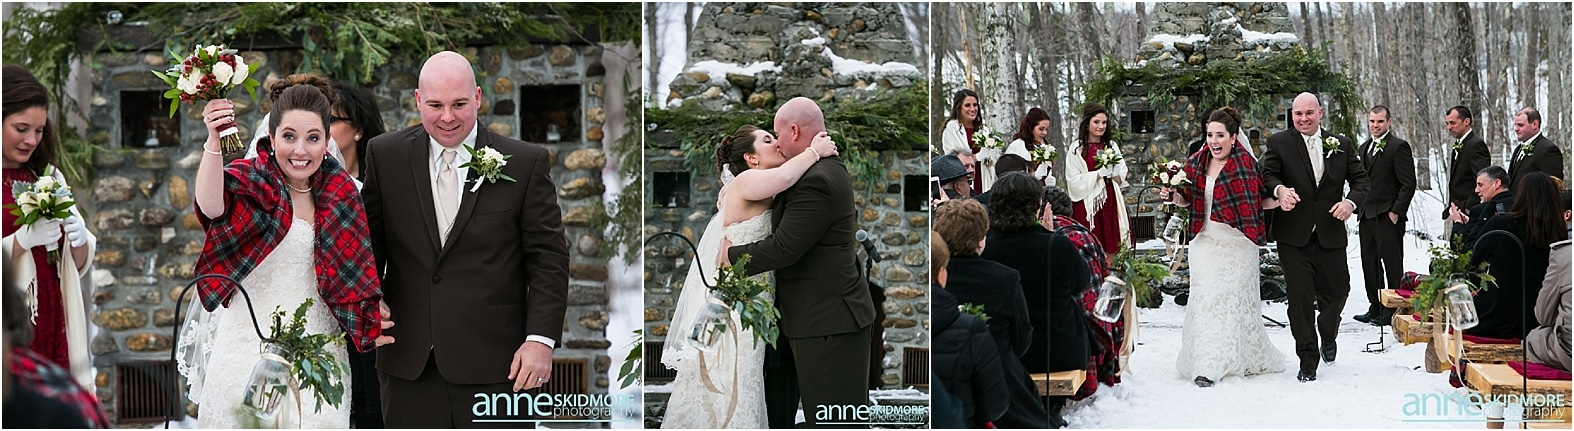 Whitneys_Inn_Wedding_028